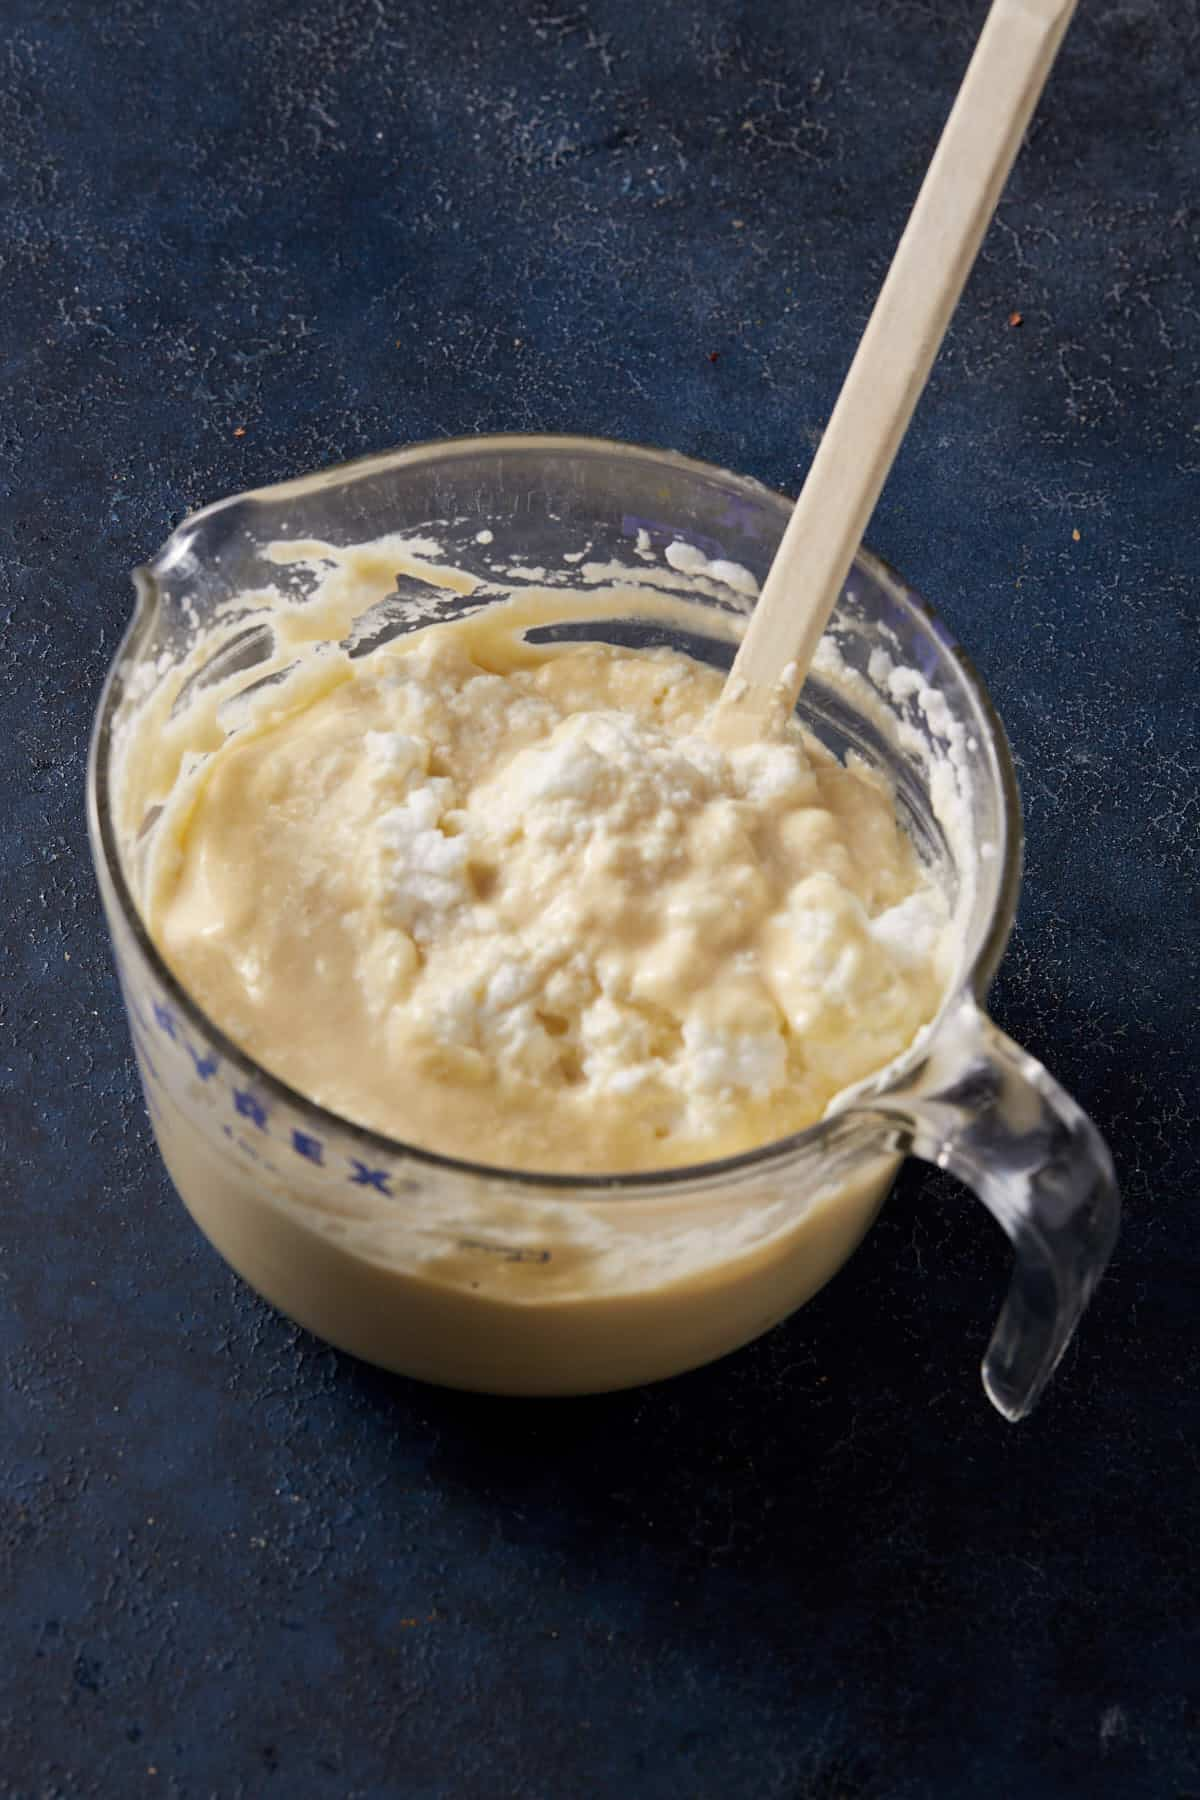 A stack of fluffy waffles with butter on top